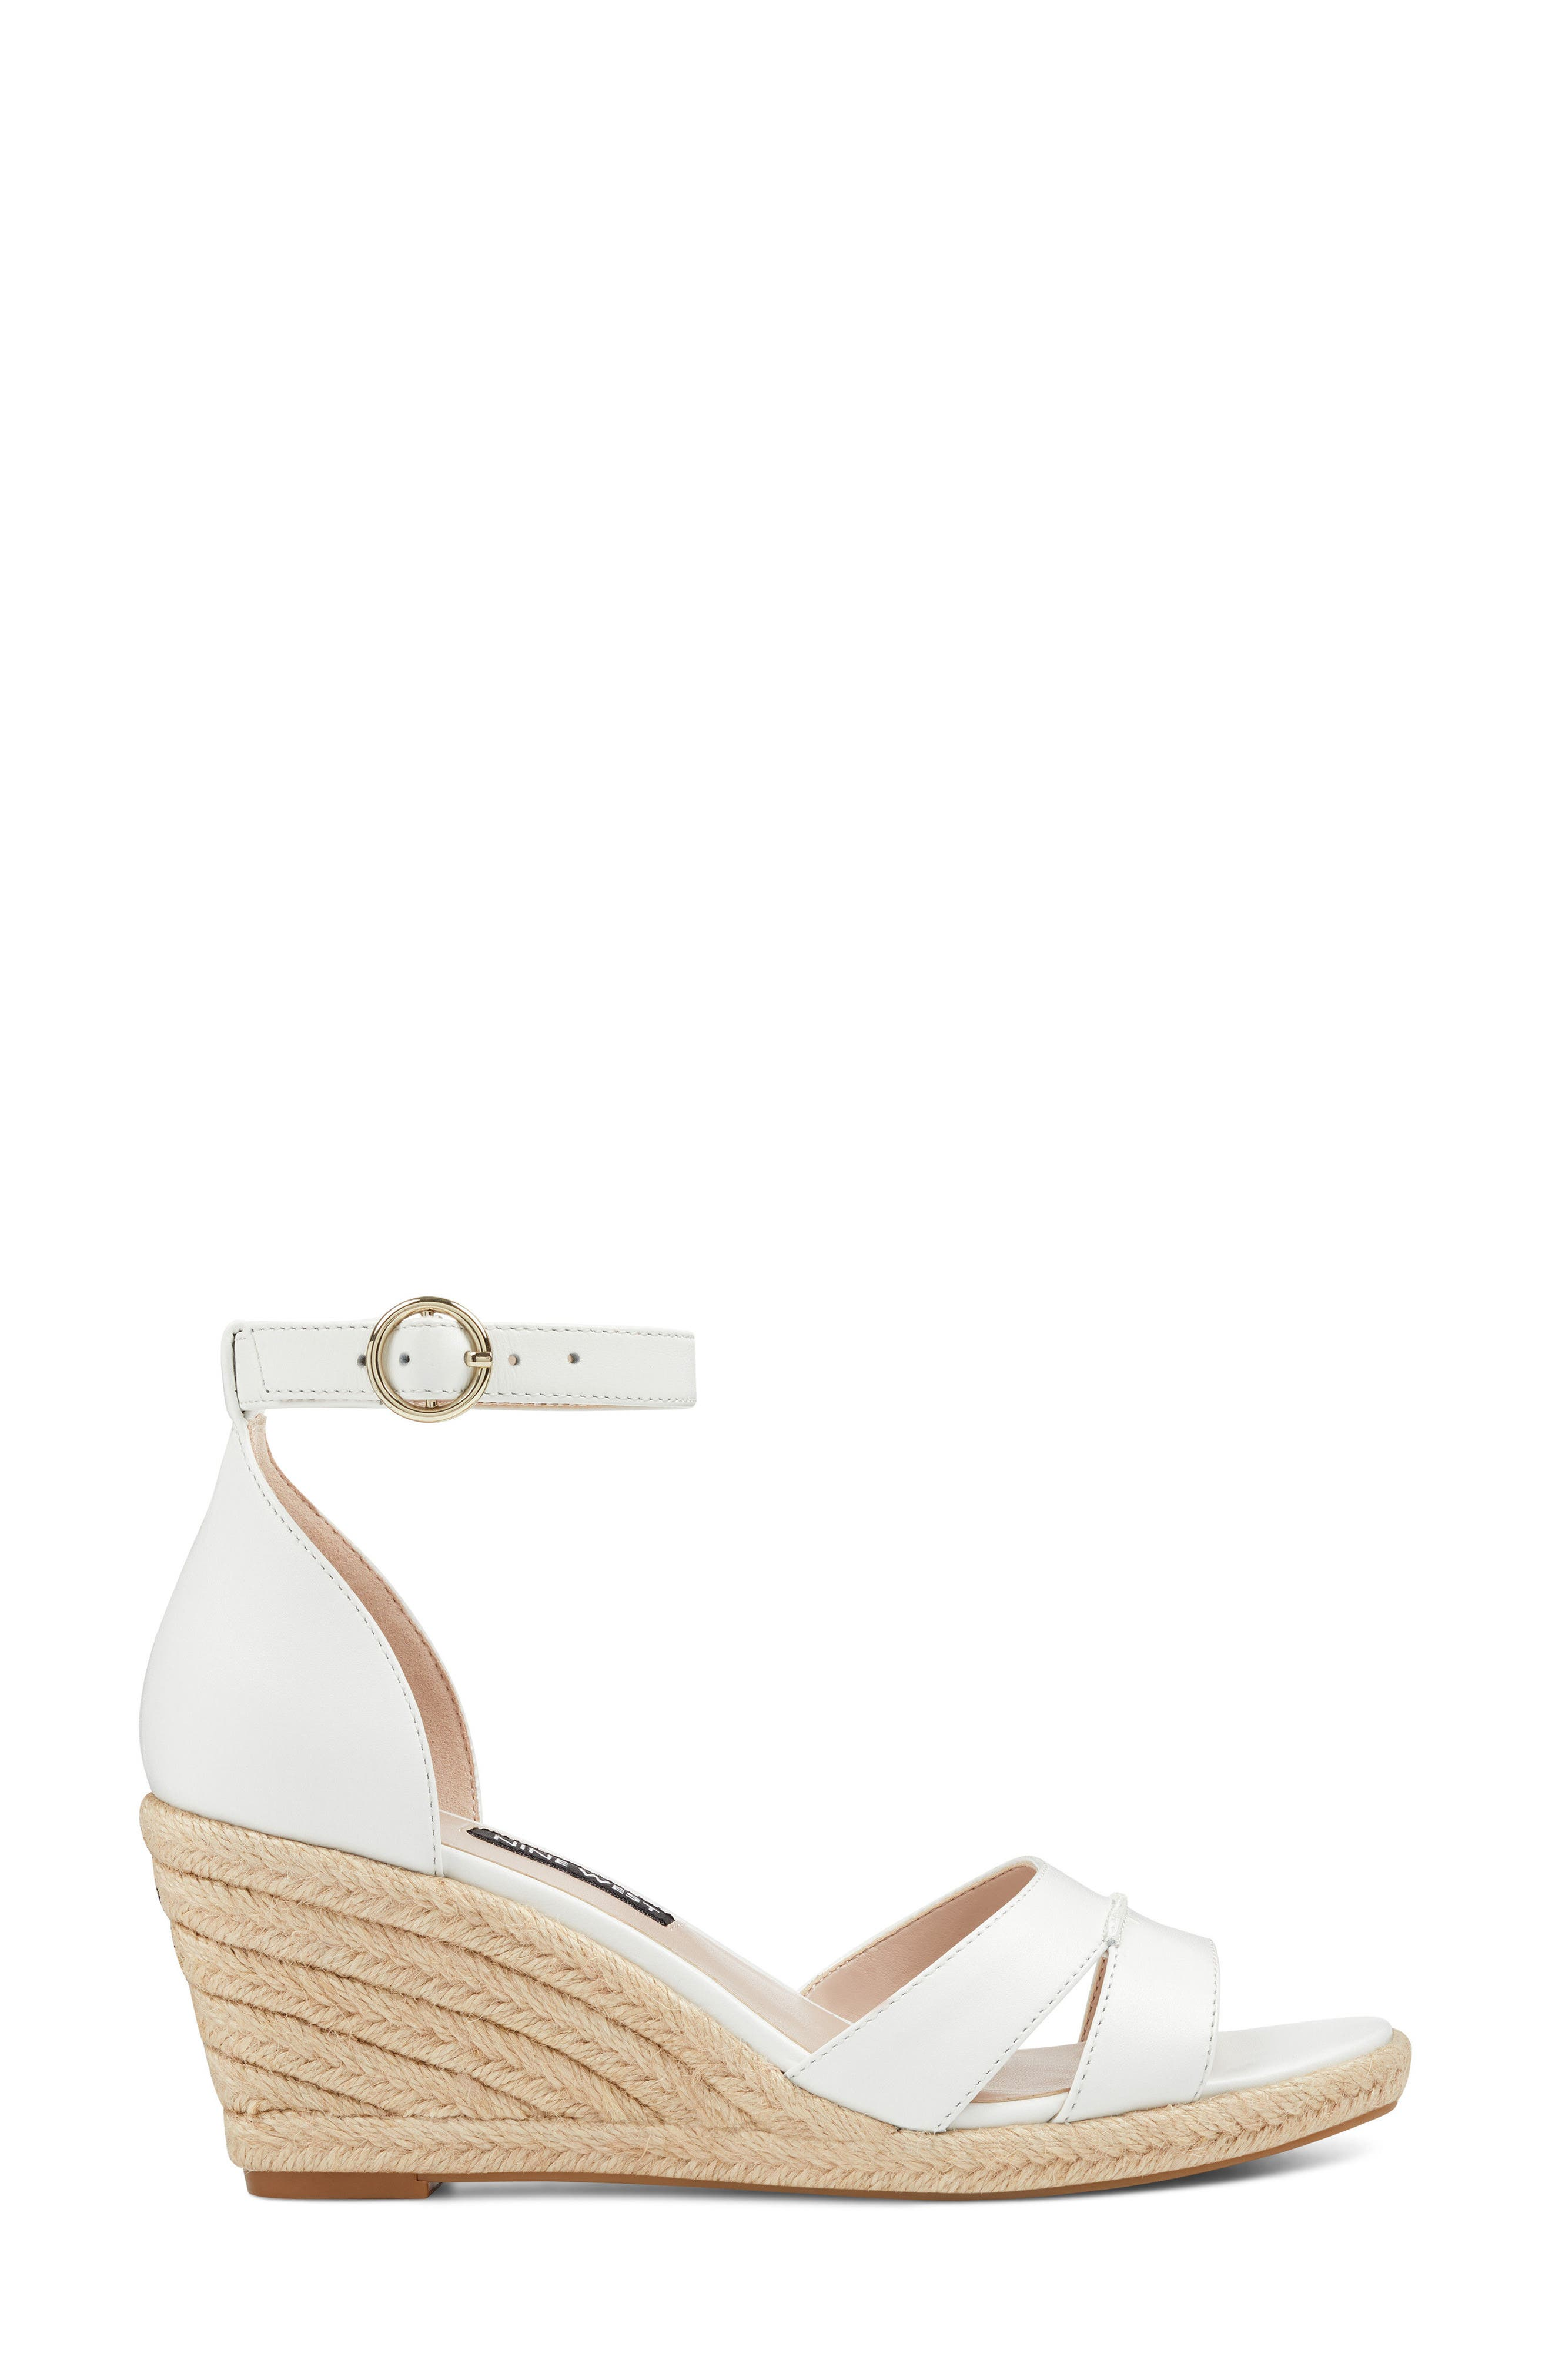 Jeranna Espadrille Wedge Sandal,                             Alternate thumbnail 3, color,                             WHITE LEATHER